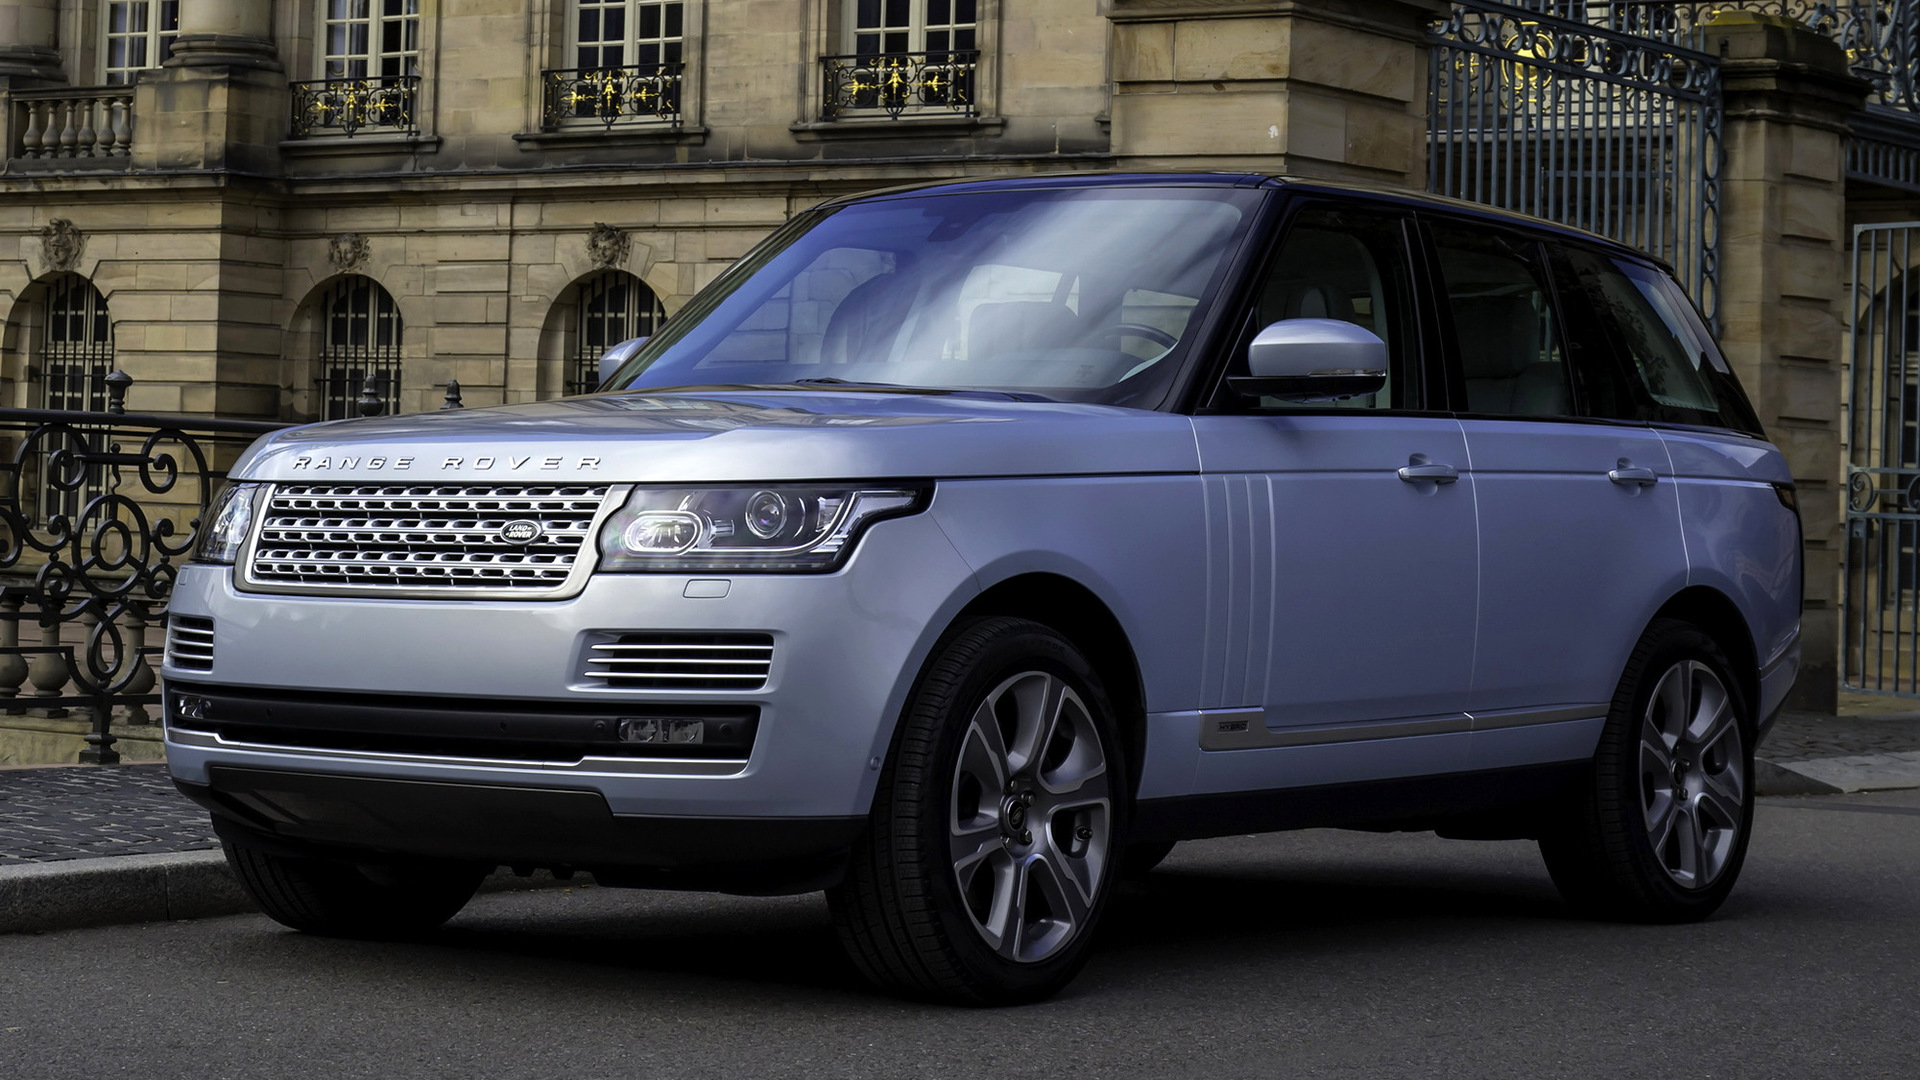 range rover hybrid autobiography 2014 wallpapers and hd images car pixel. Black Bedroom Furniture Sets. Home Design Ideas